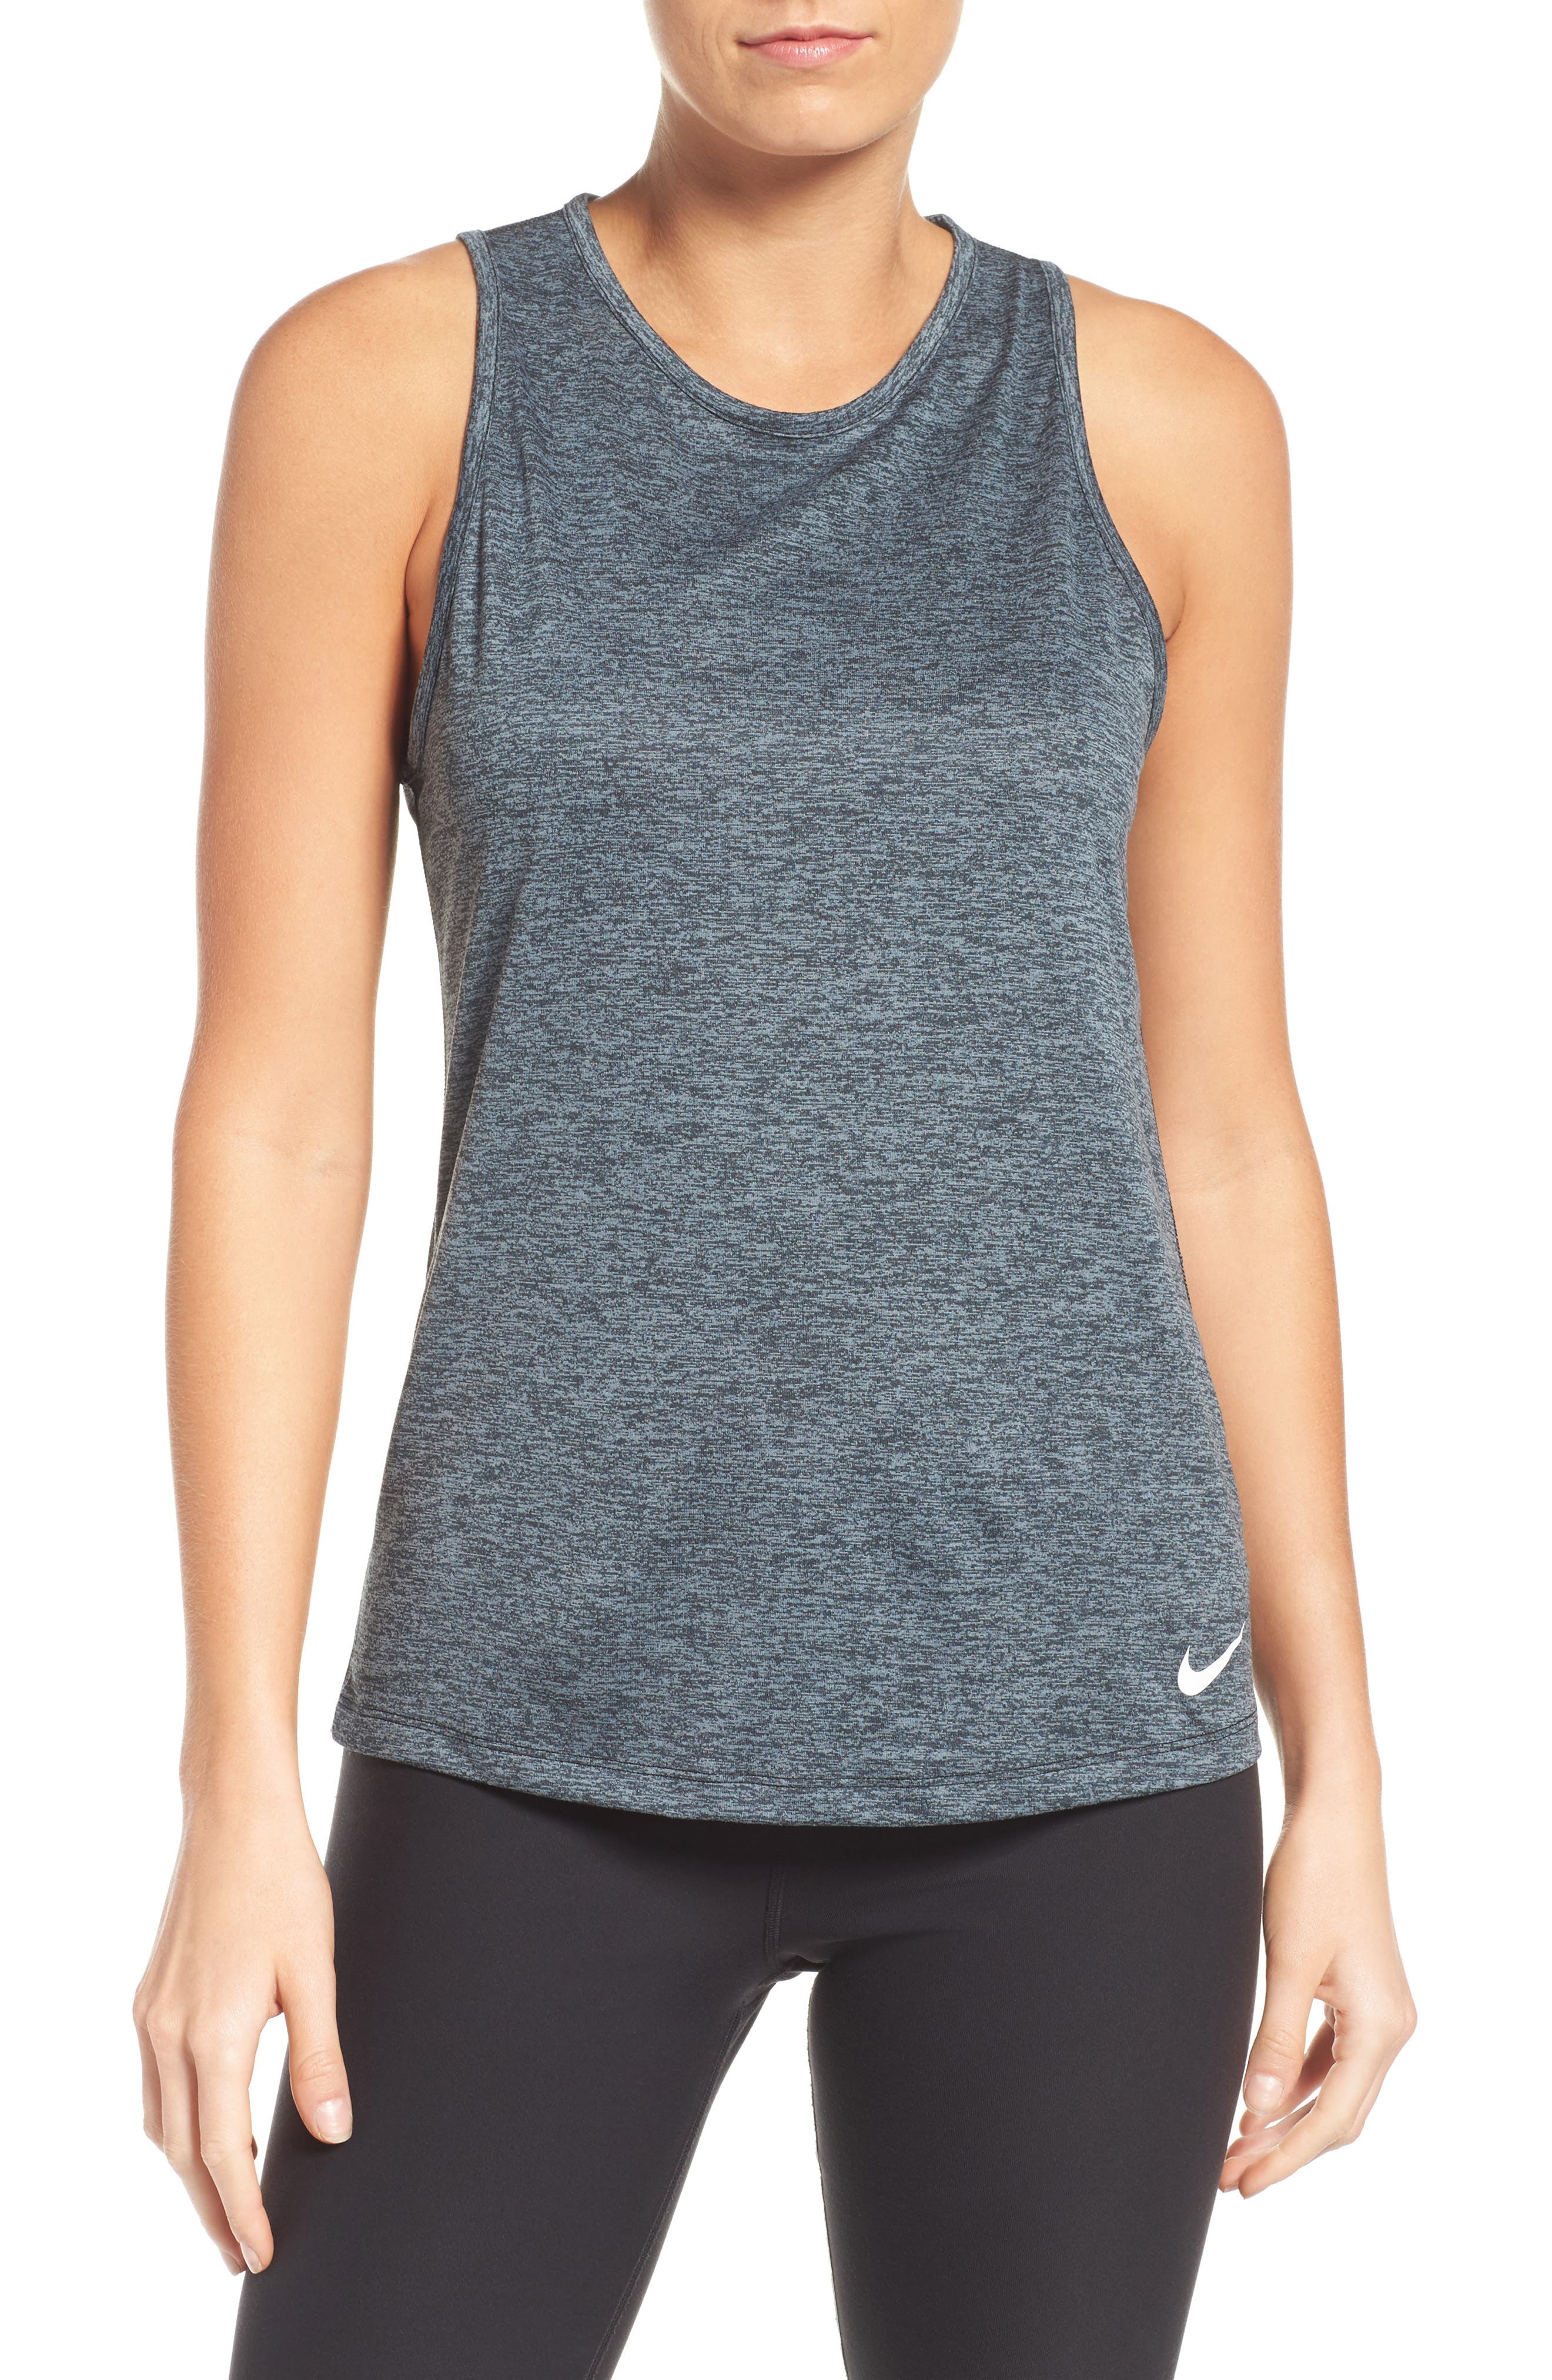 Dry Training Tank,                             Main thumbnail 1, color,                             BLACK/ HEATHER/ COOL GREY